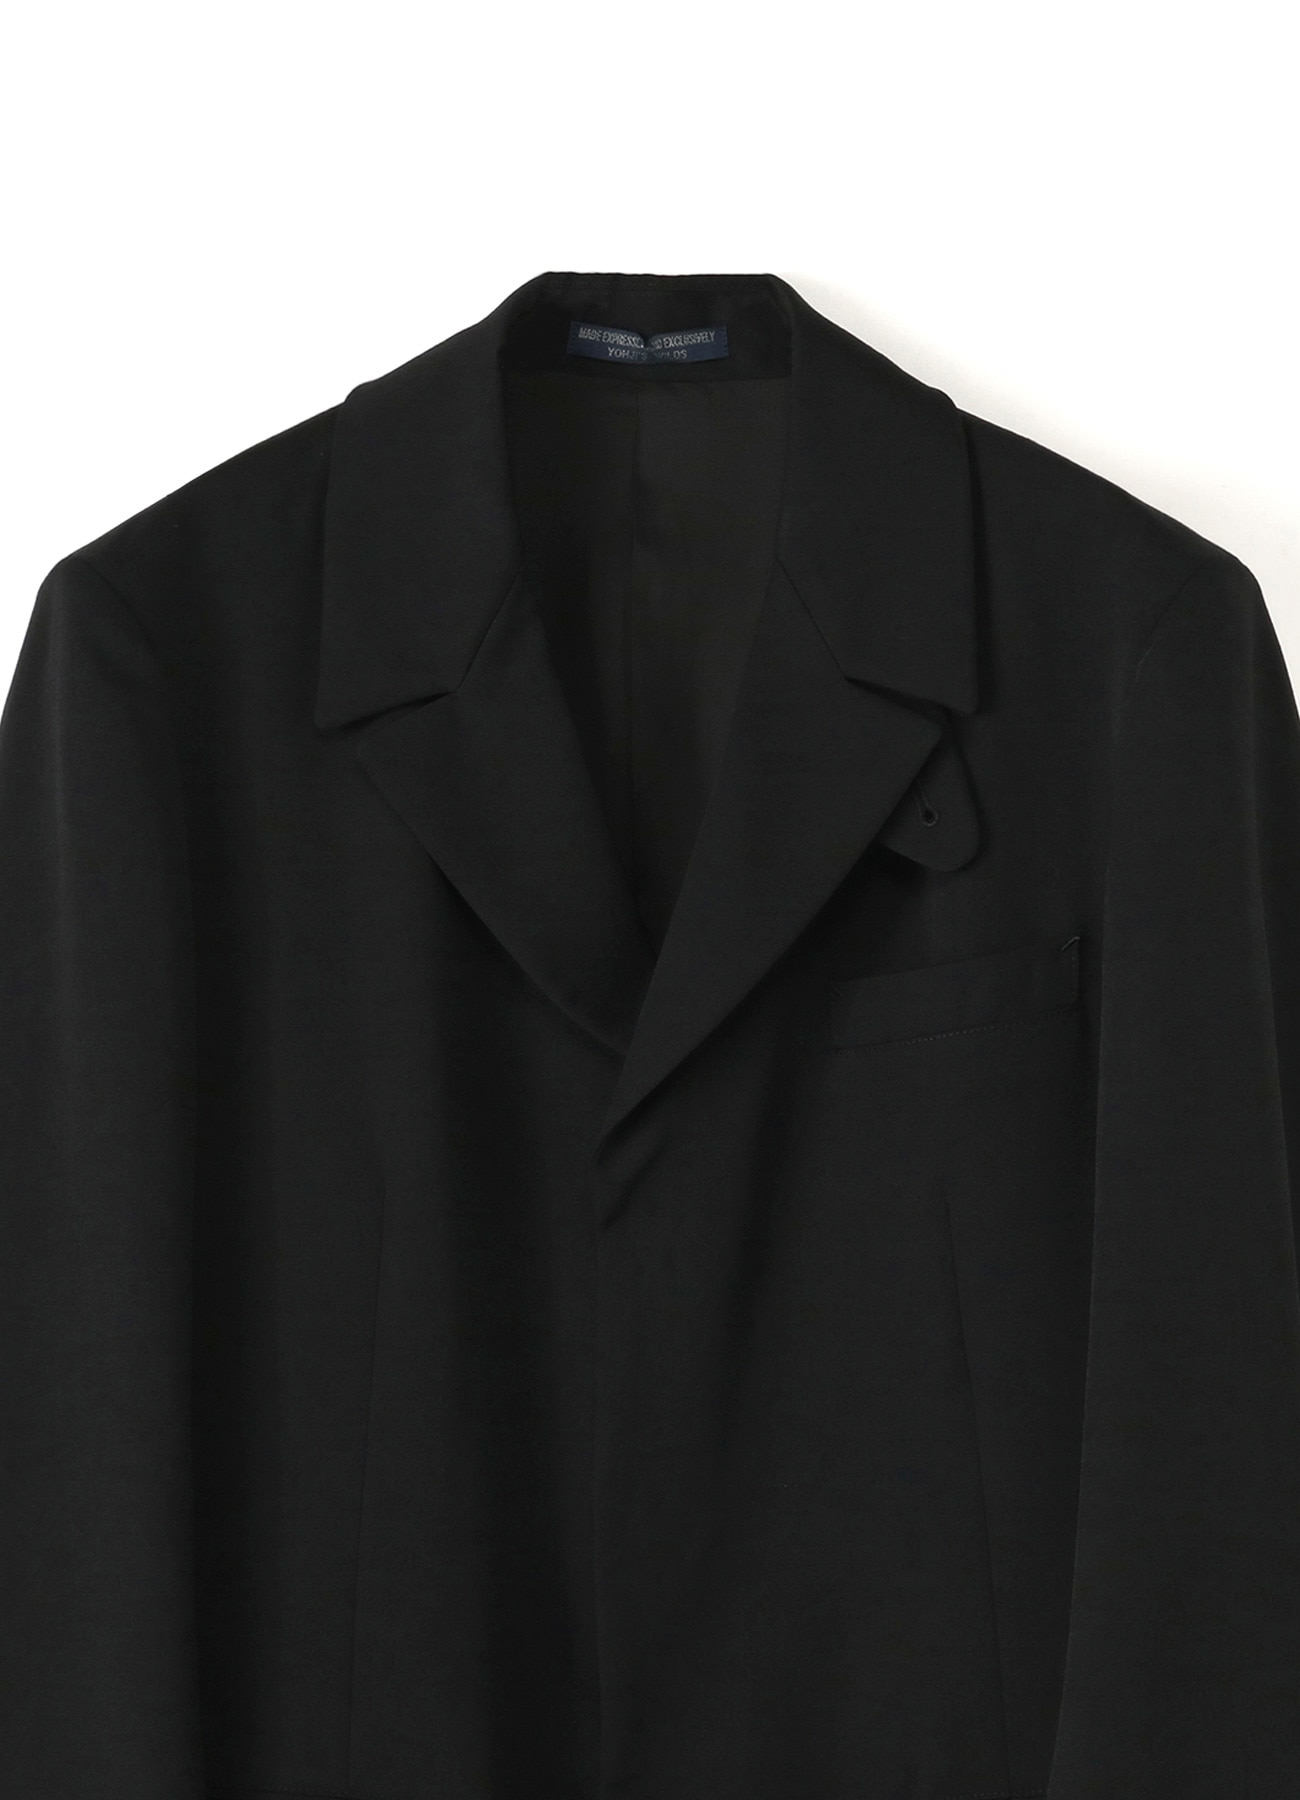 REGULATION GABARDINE SNAP BUTTON Dr.JACKET